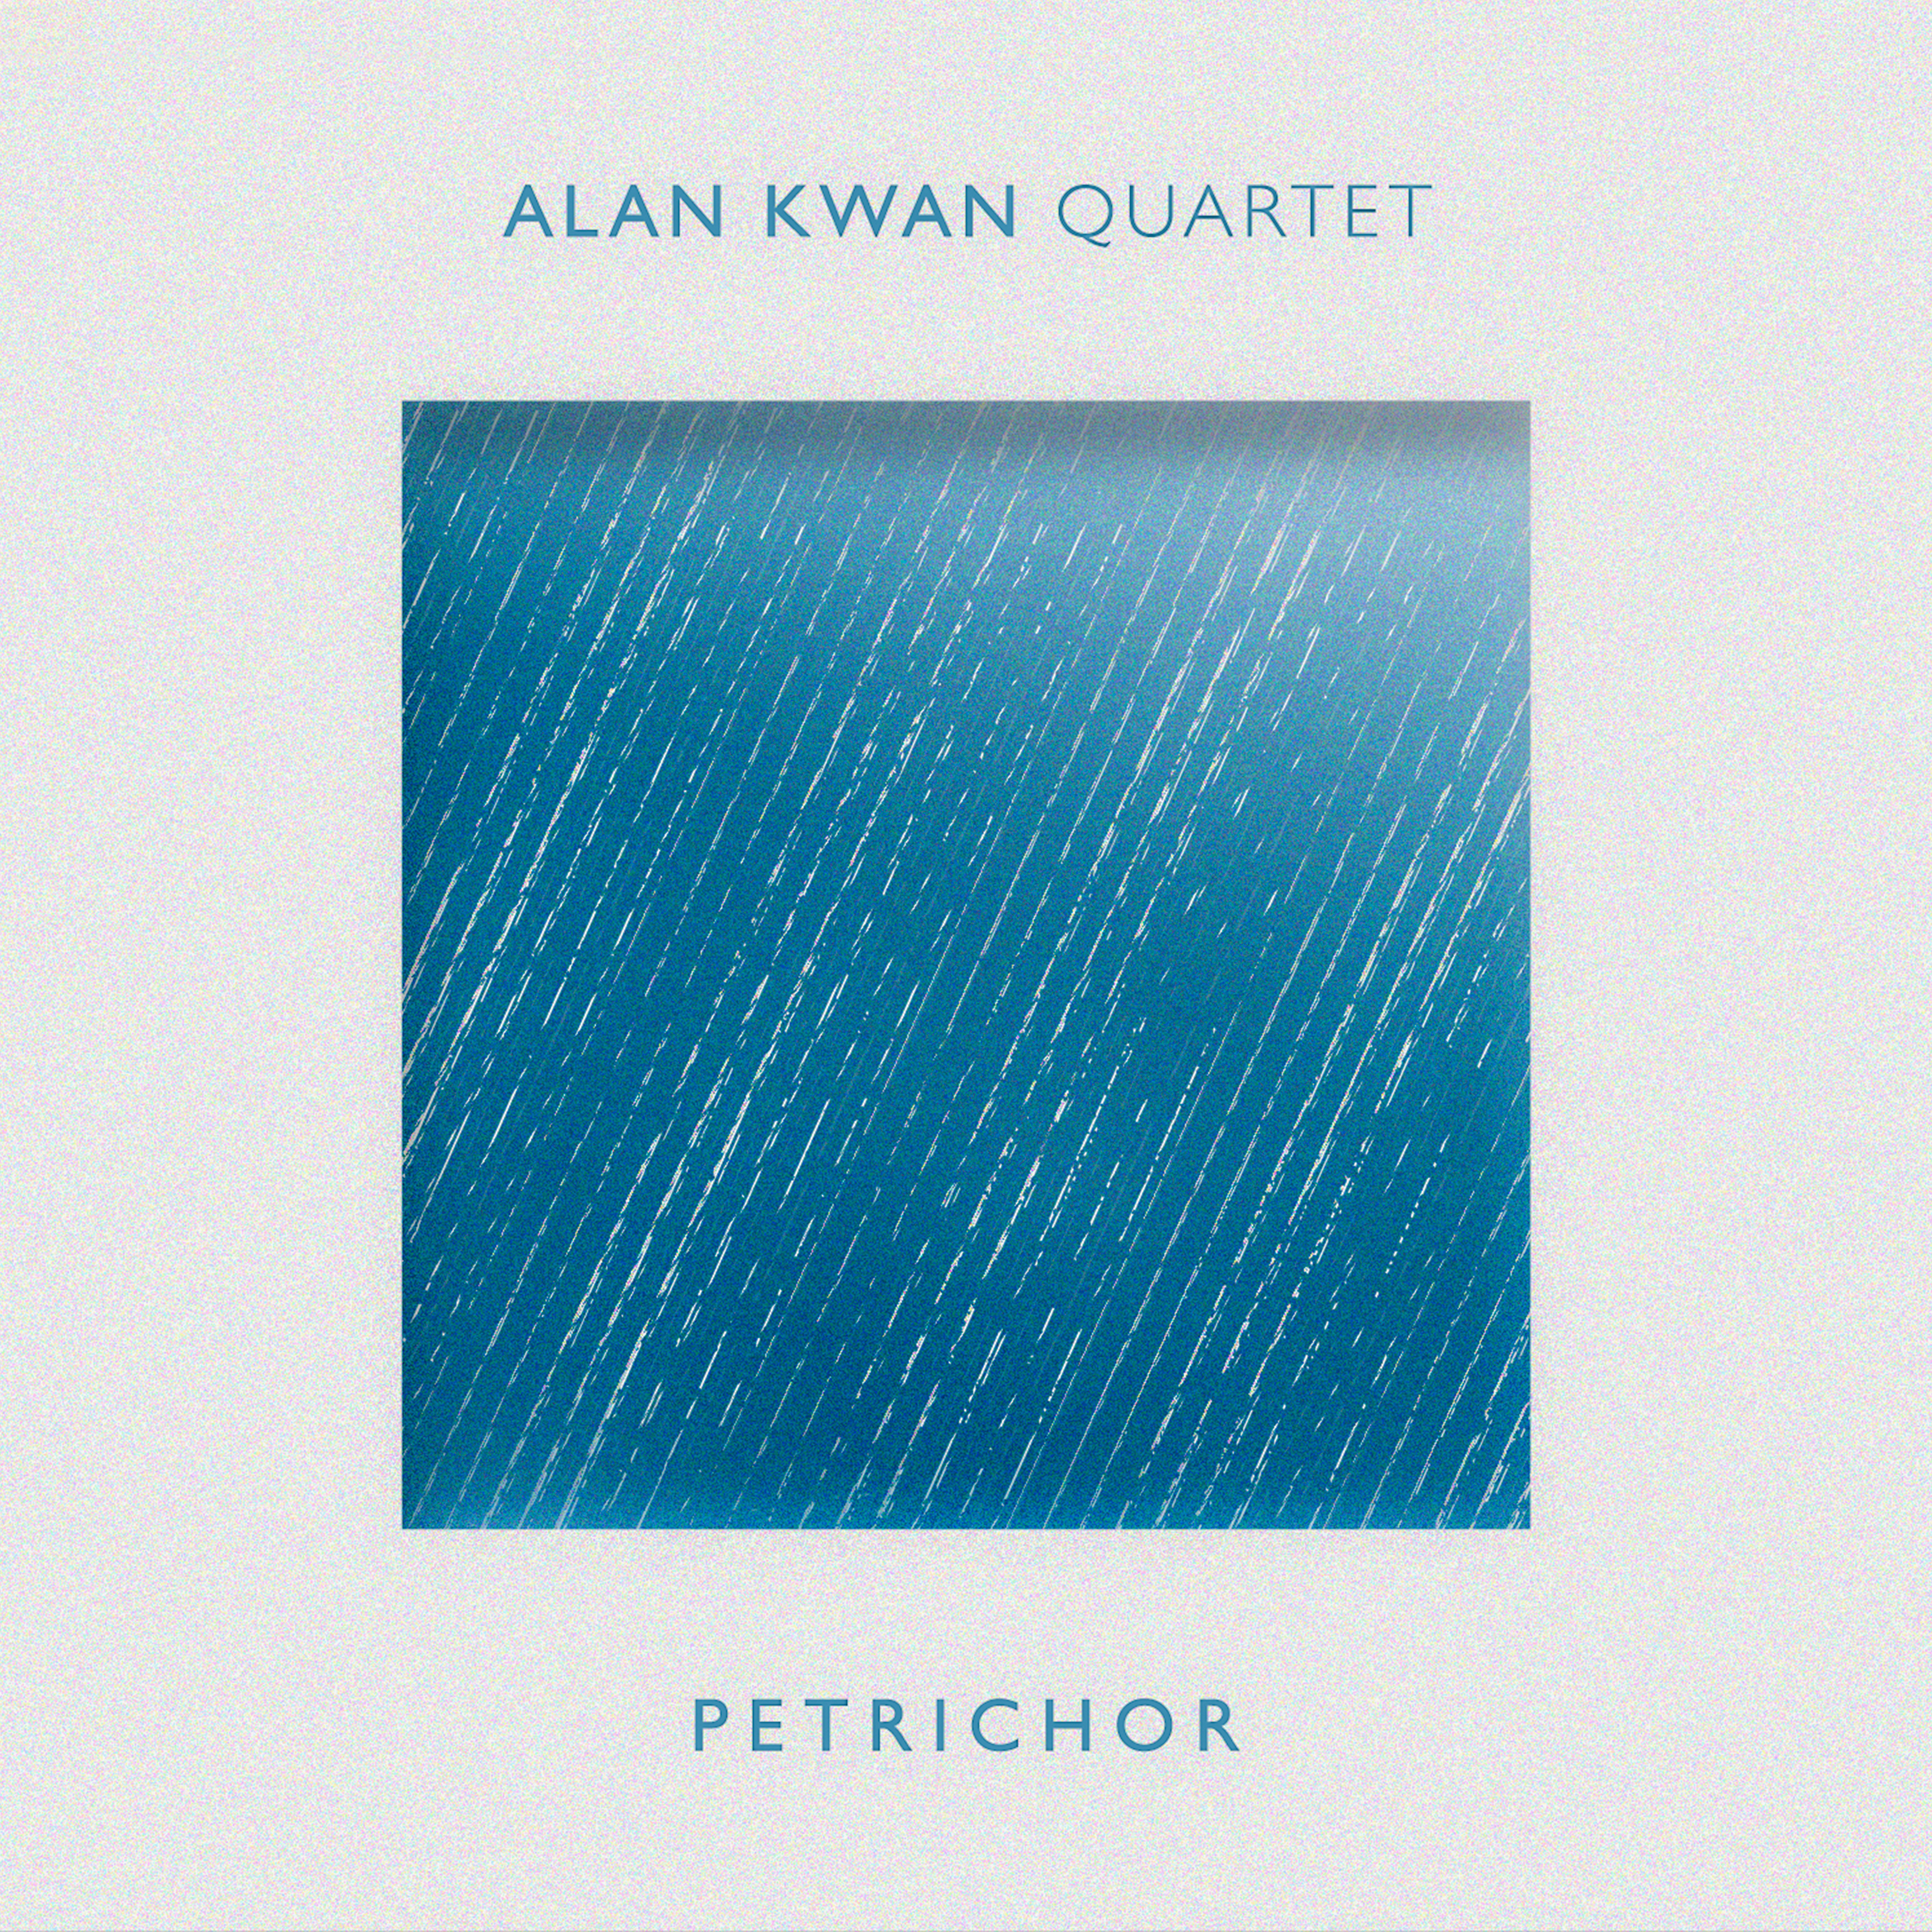 Tuesday Jazz Night: Alan Kwan Quartet (featuring guitar, keyboard, bass and drums)